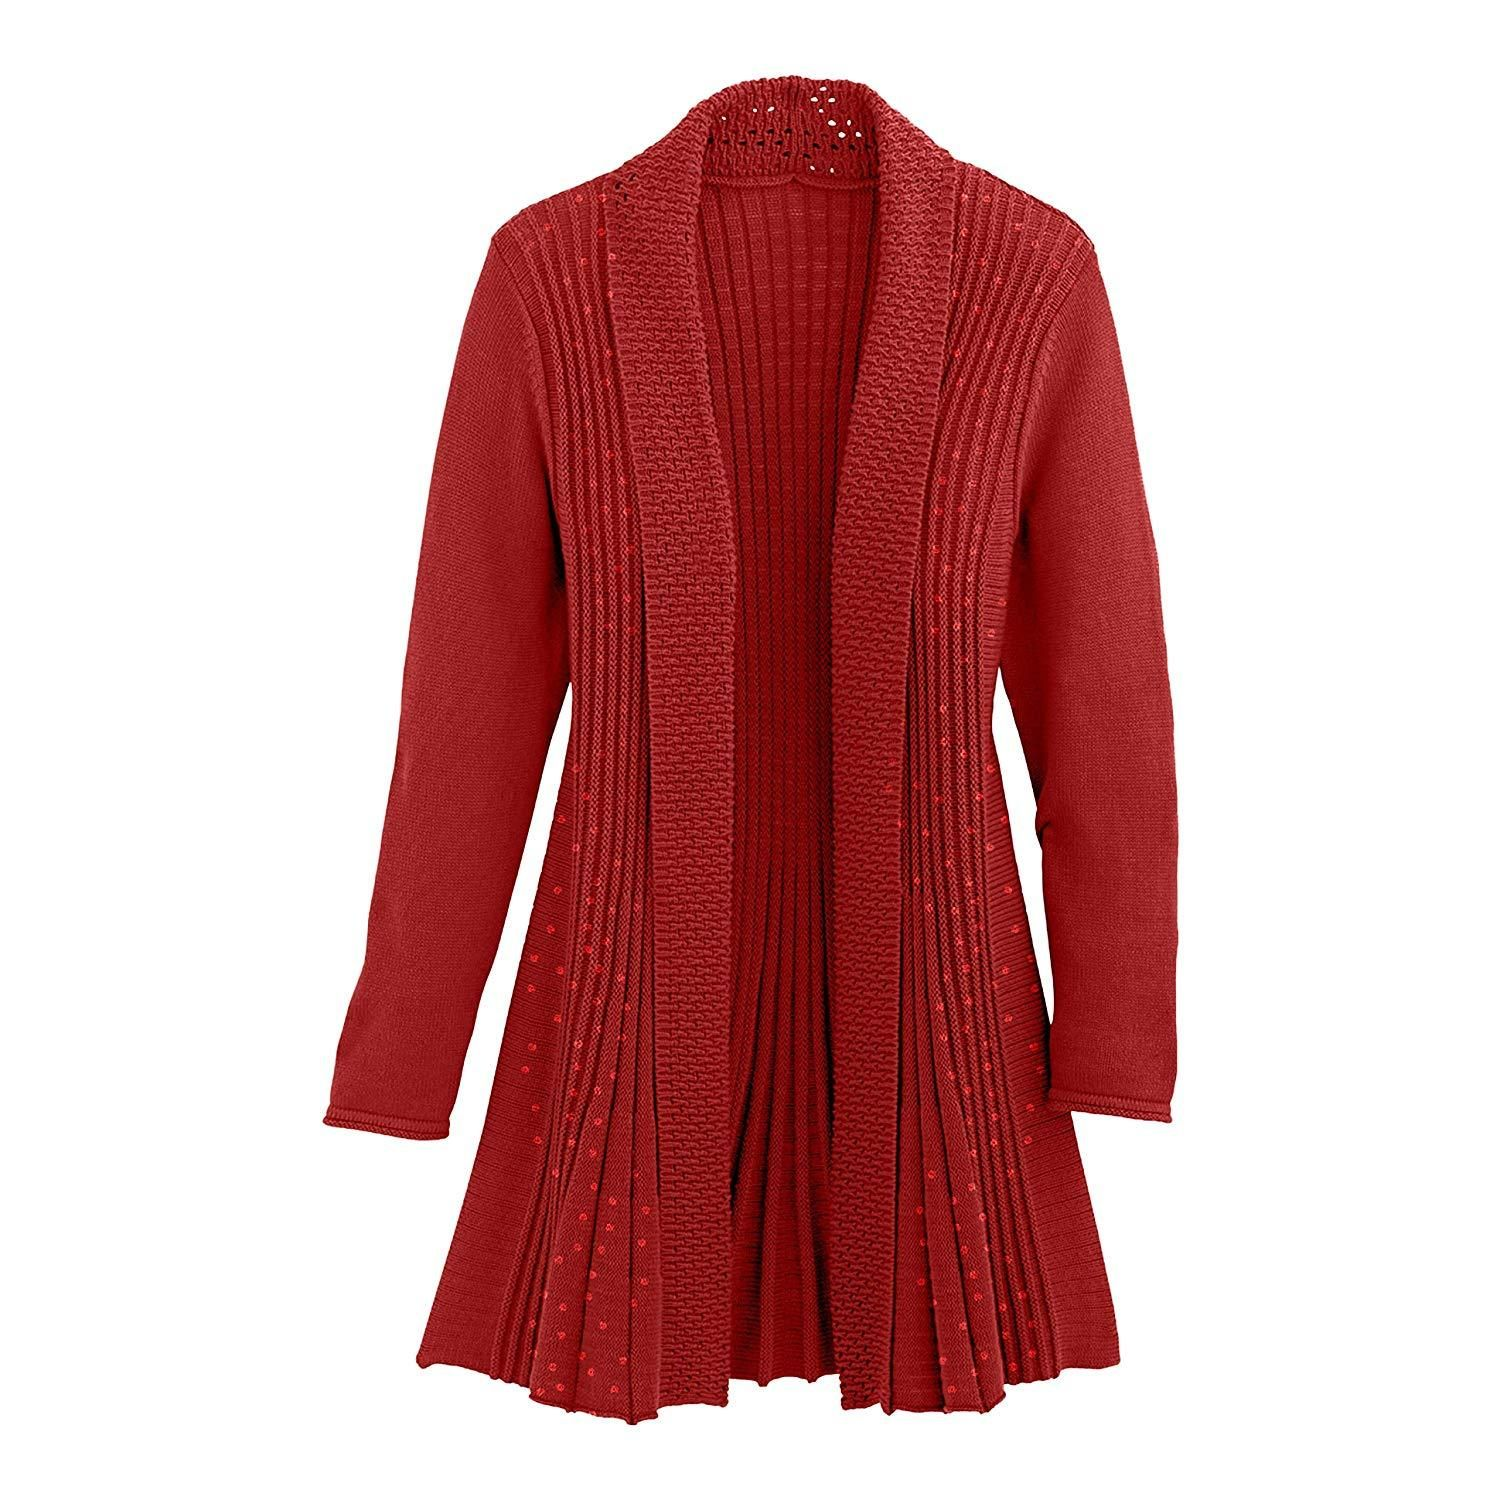 Cardigans for Women Long Sleeve Swingy Midweight Sequin